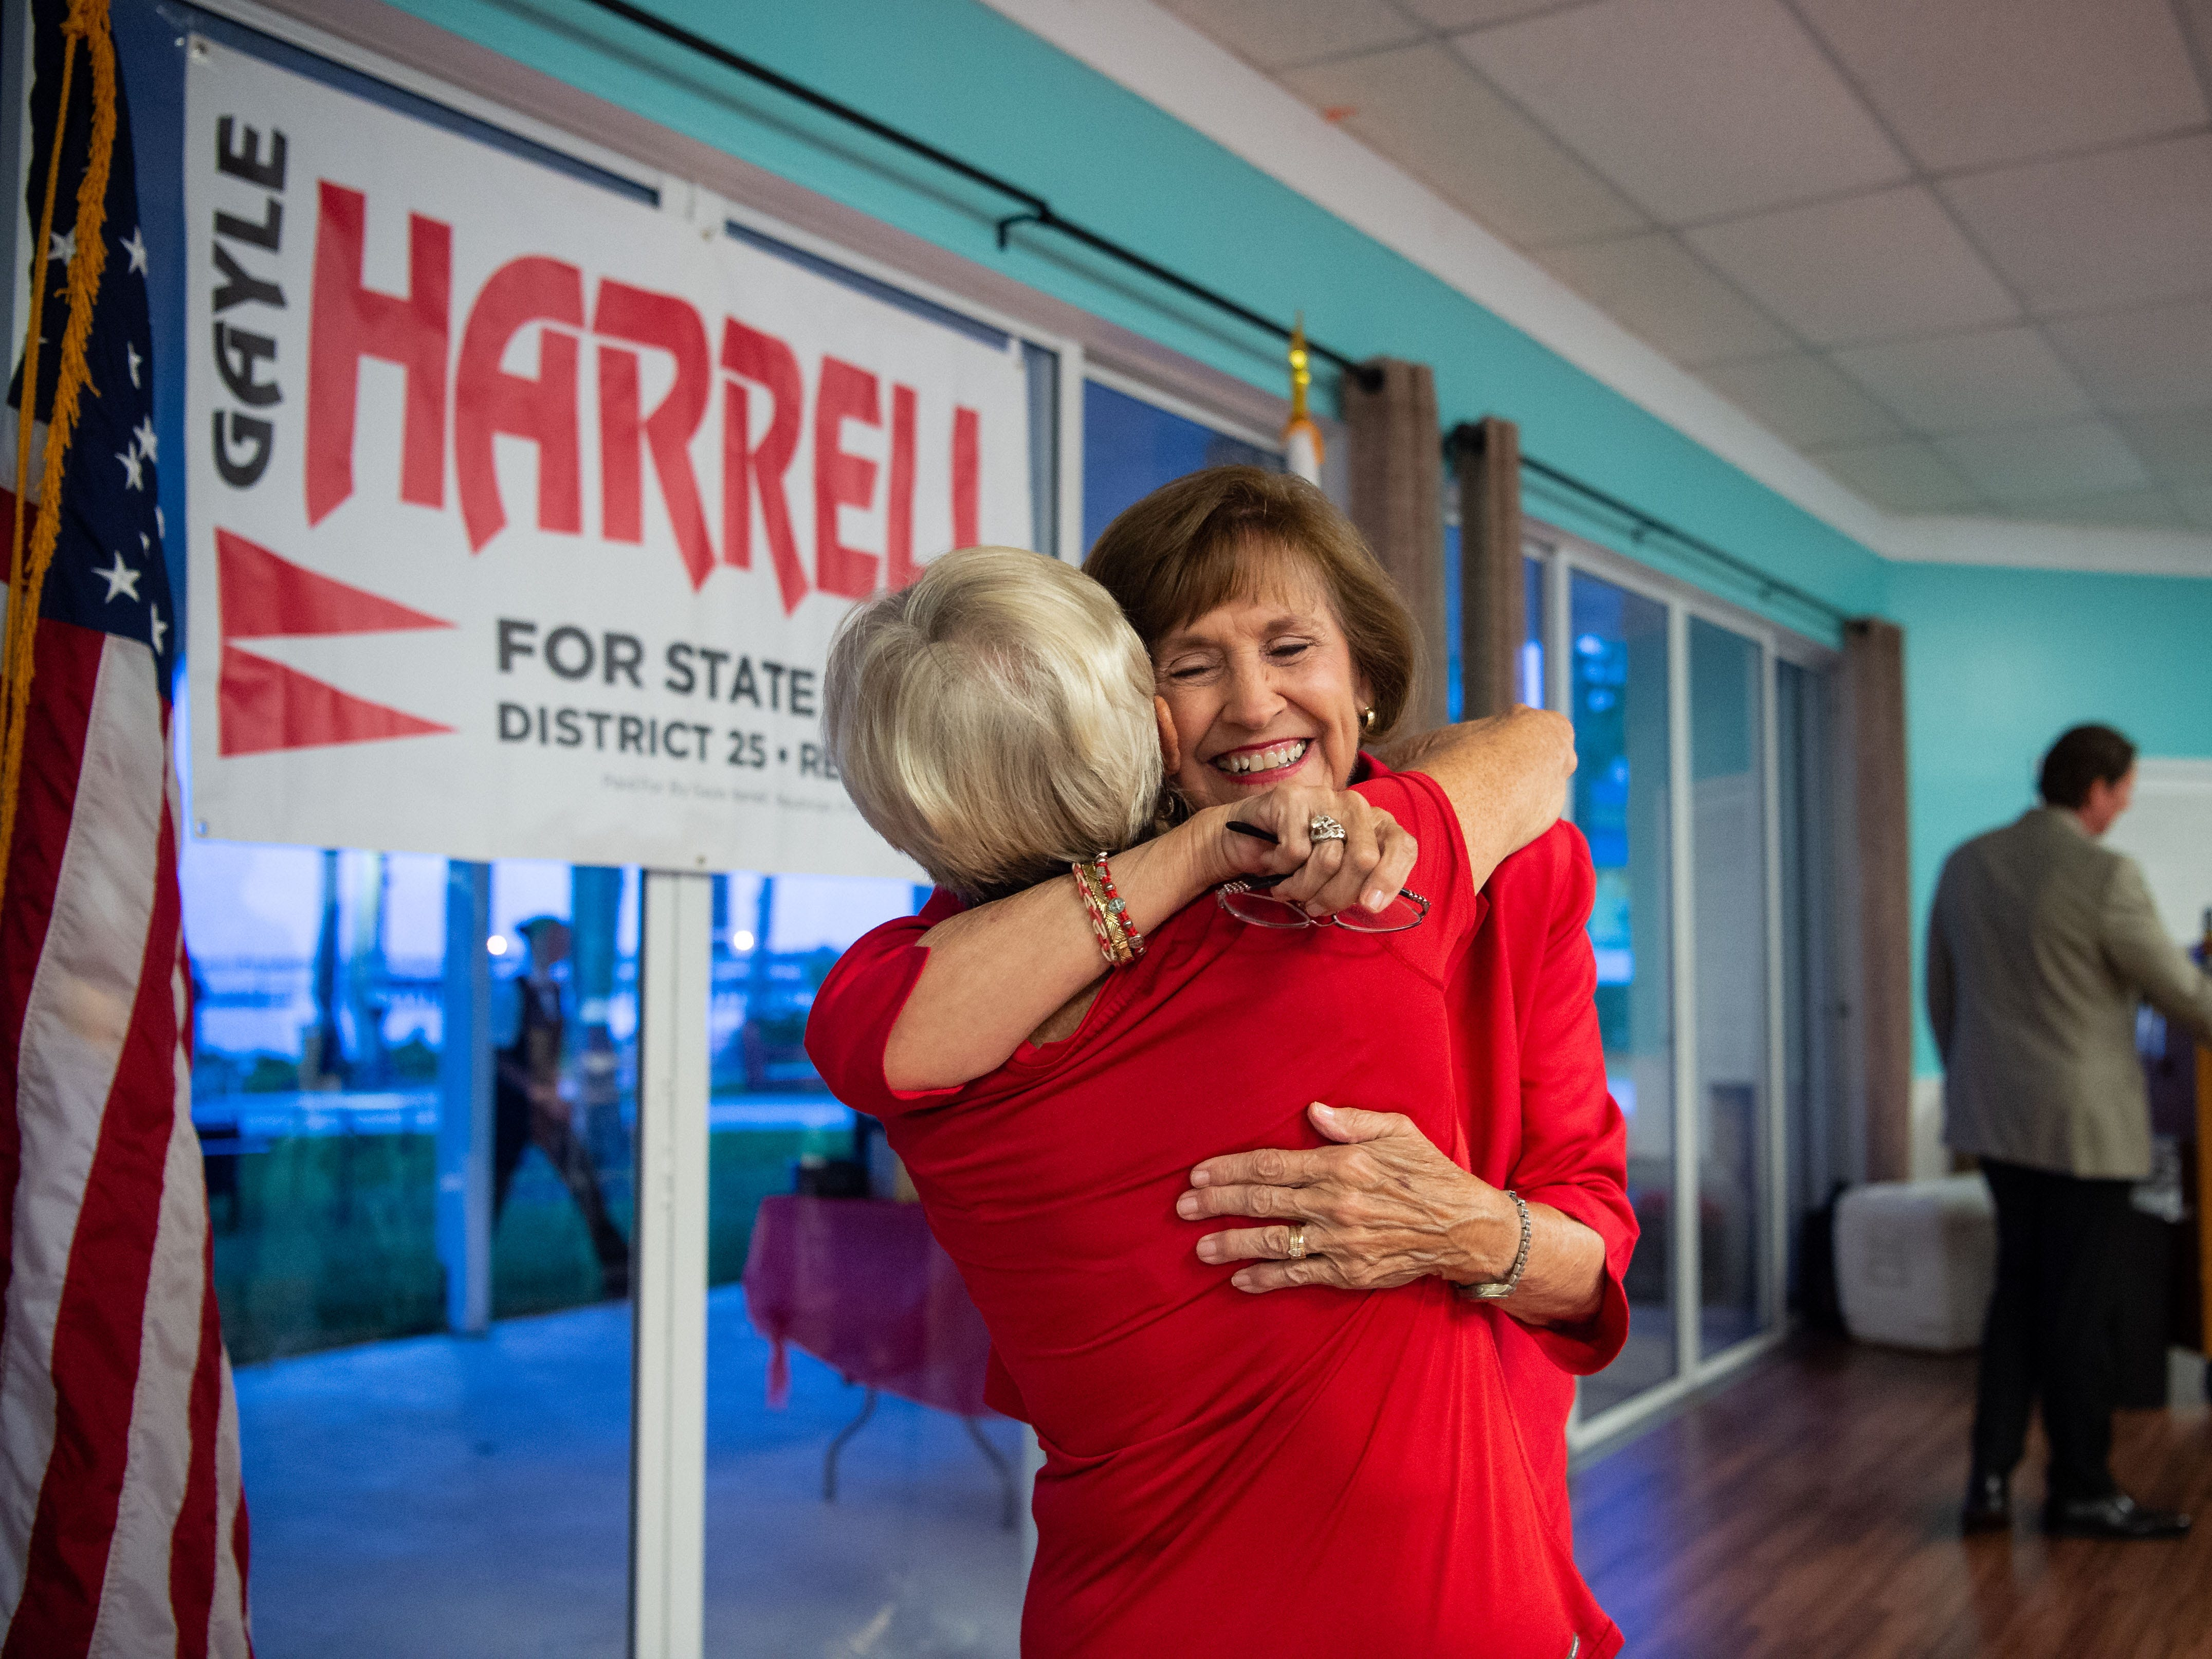 """State Rep. Gayle Harrell (center) embraces decades-long friend and supporter Annie MacMillan, of Stuart, after the announcement of Harrell's win over Belinda Keiser for the Republican Party nomination Tuesday, Aug. 28, 2018, to run for the Senate Dist. 25 seat being vacated by Sen. Joe Negron. """"We've done it before, we'll do it again,"""" said MacMillan, attending a primary elections party in downtown Stuart, regarding the upcoming midterm elections."""